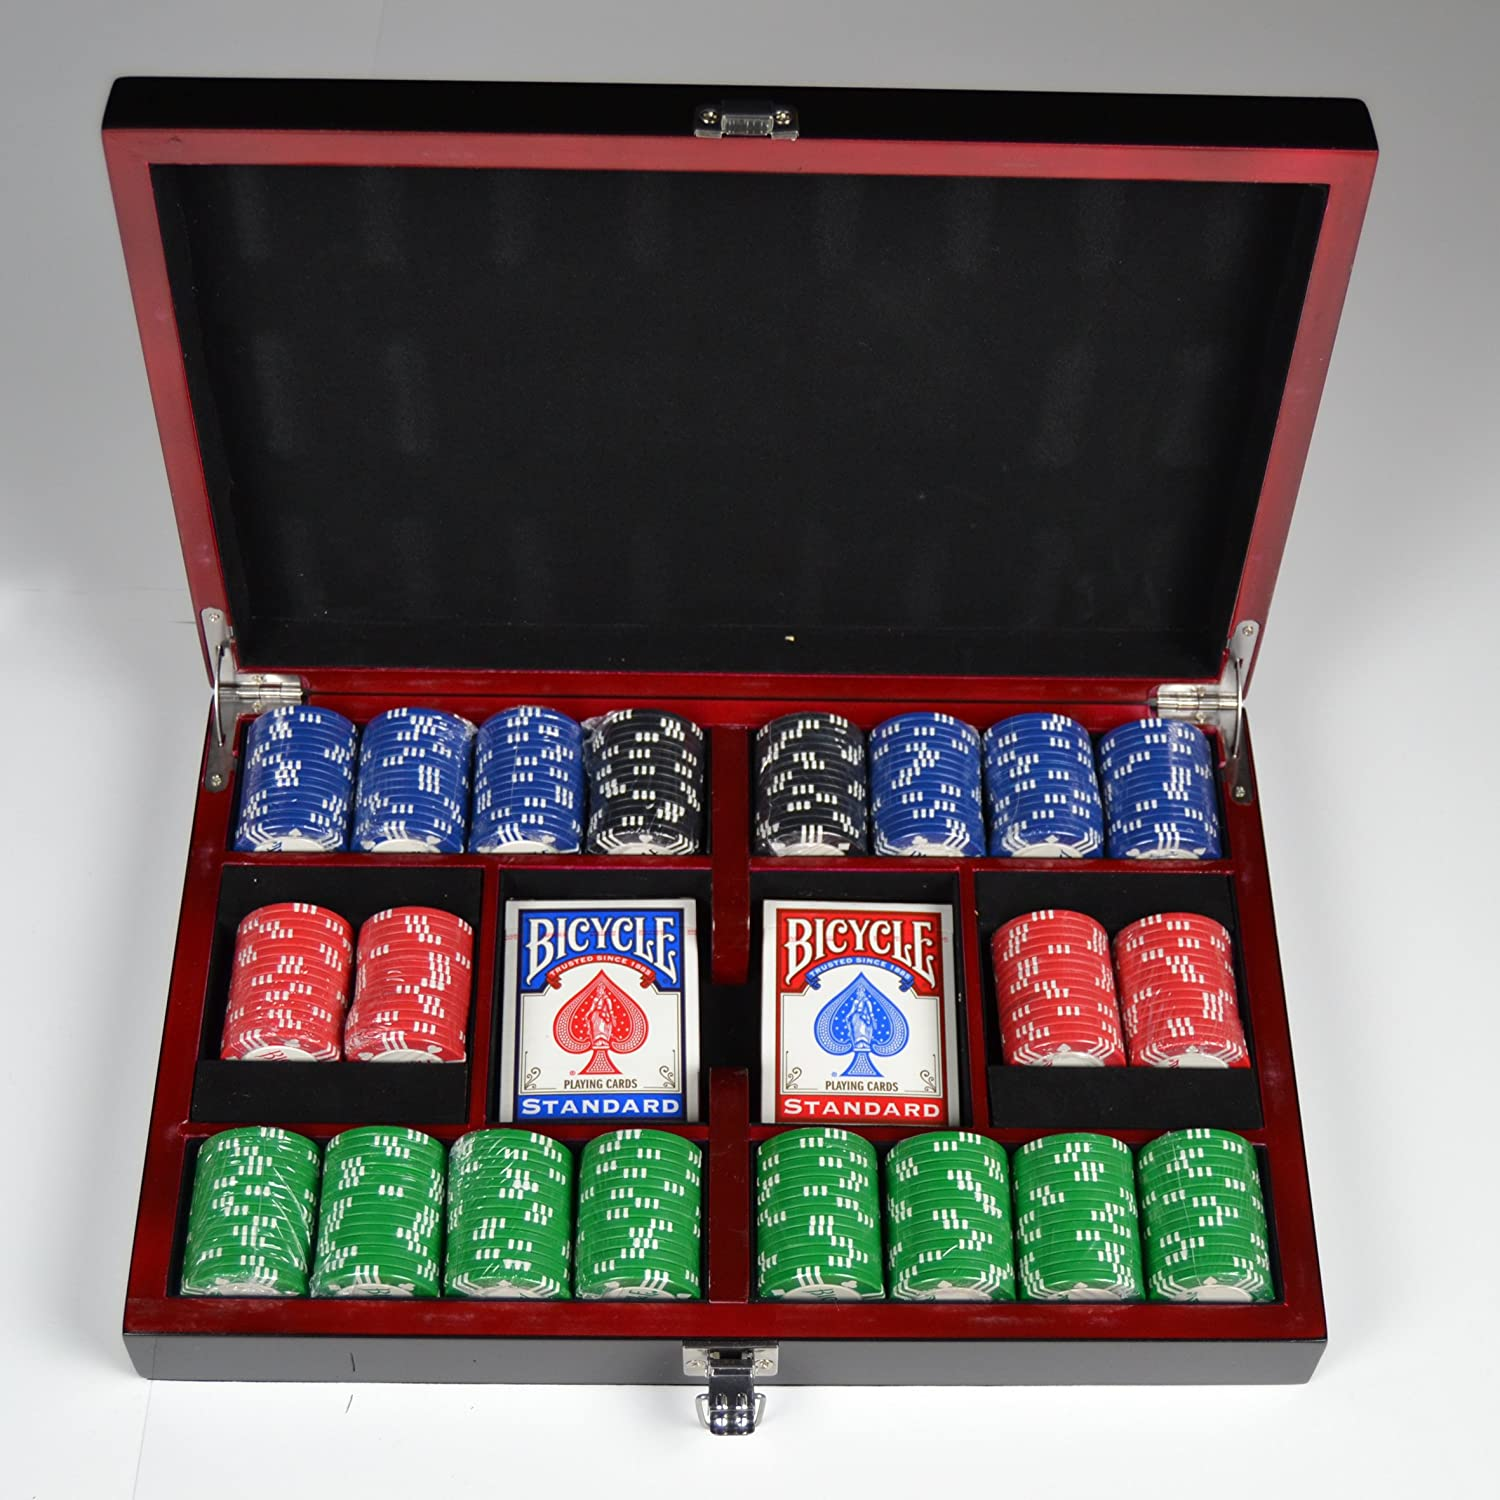 Bicycle poker set roulette valise carpisa